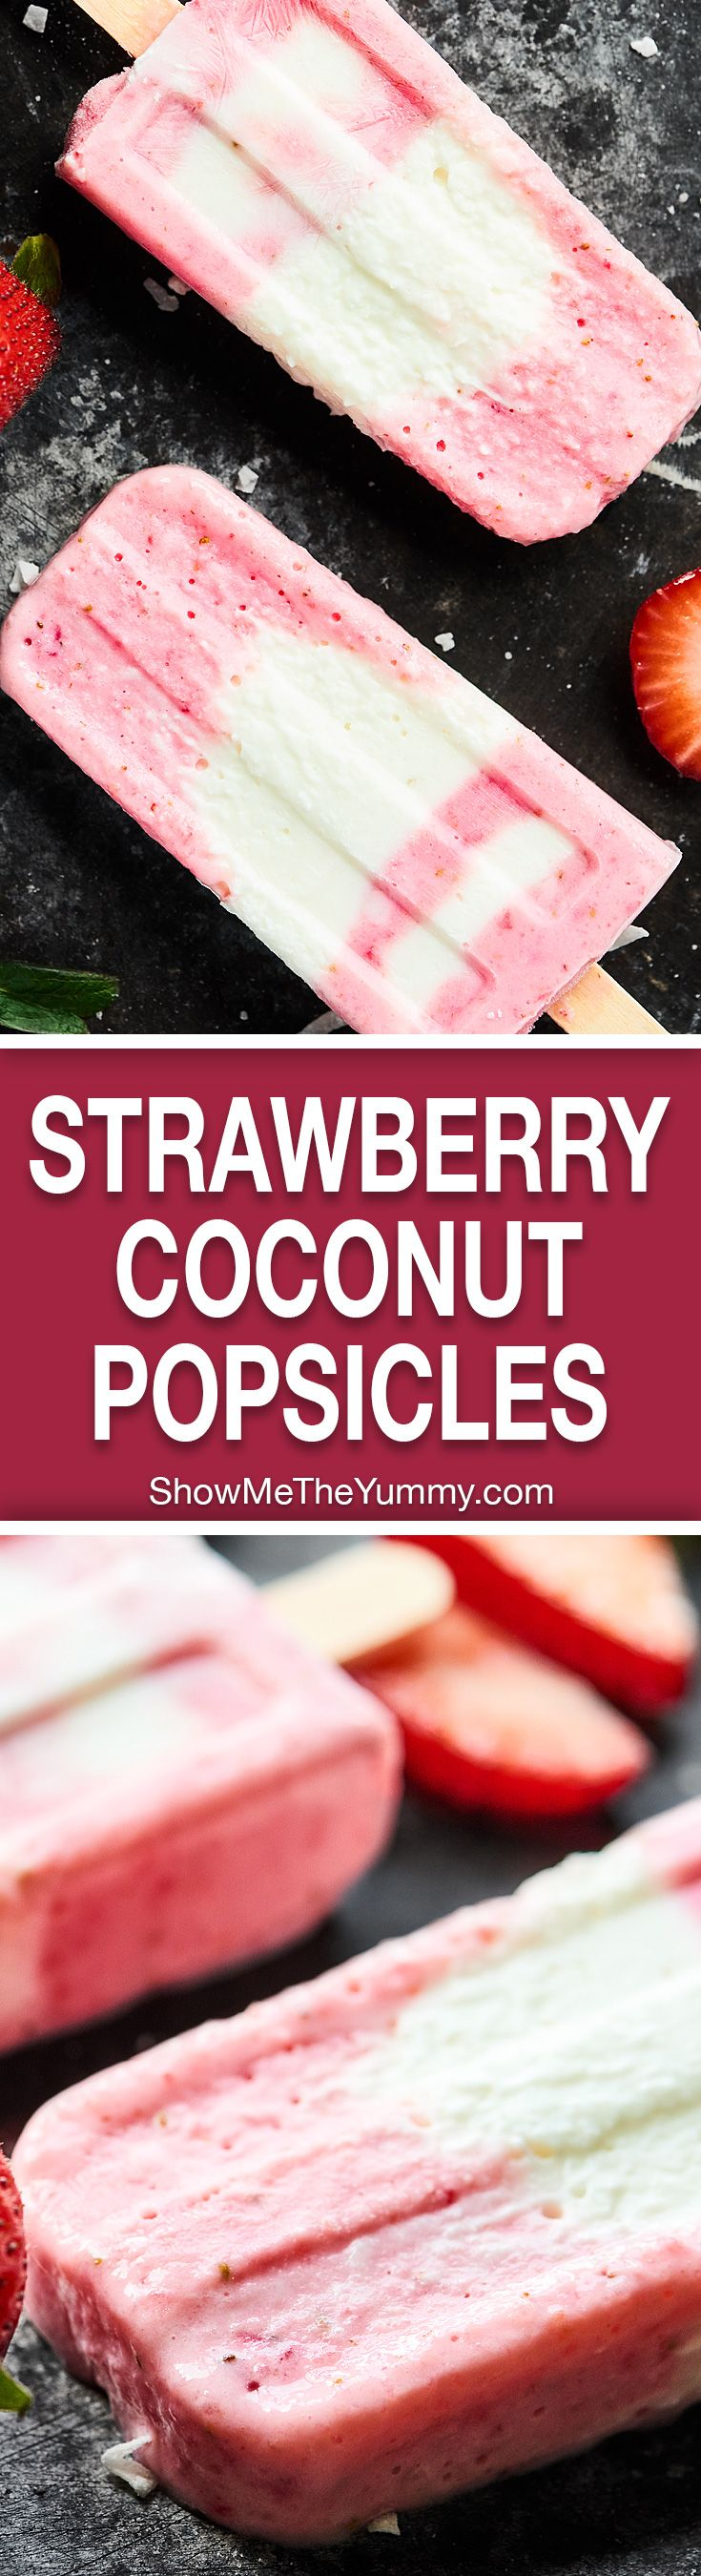 Strawberry Coconut Popsicles, my favorite summer treat! Full of greek yogurt and fresh fruit, the ingredient list is short, the popsicles are creamy dreamy, and you better believe they're healthy enough to enjoy without the guilt! showmetheyummy.com #popsicles #greekyogurt